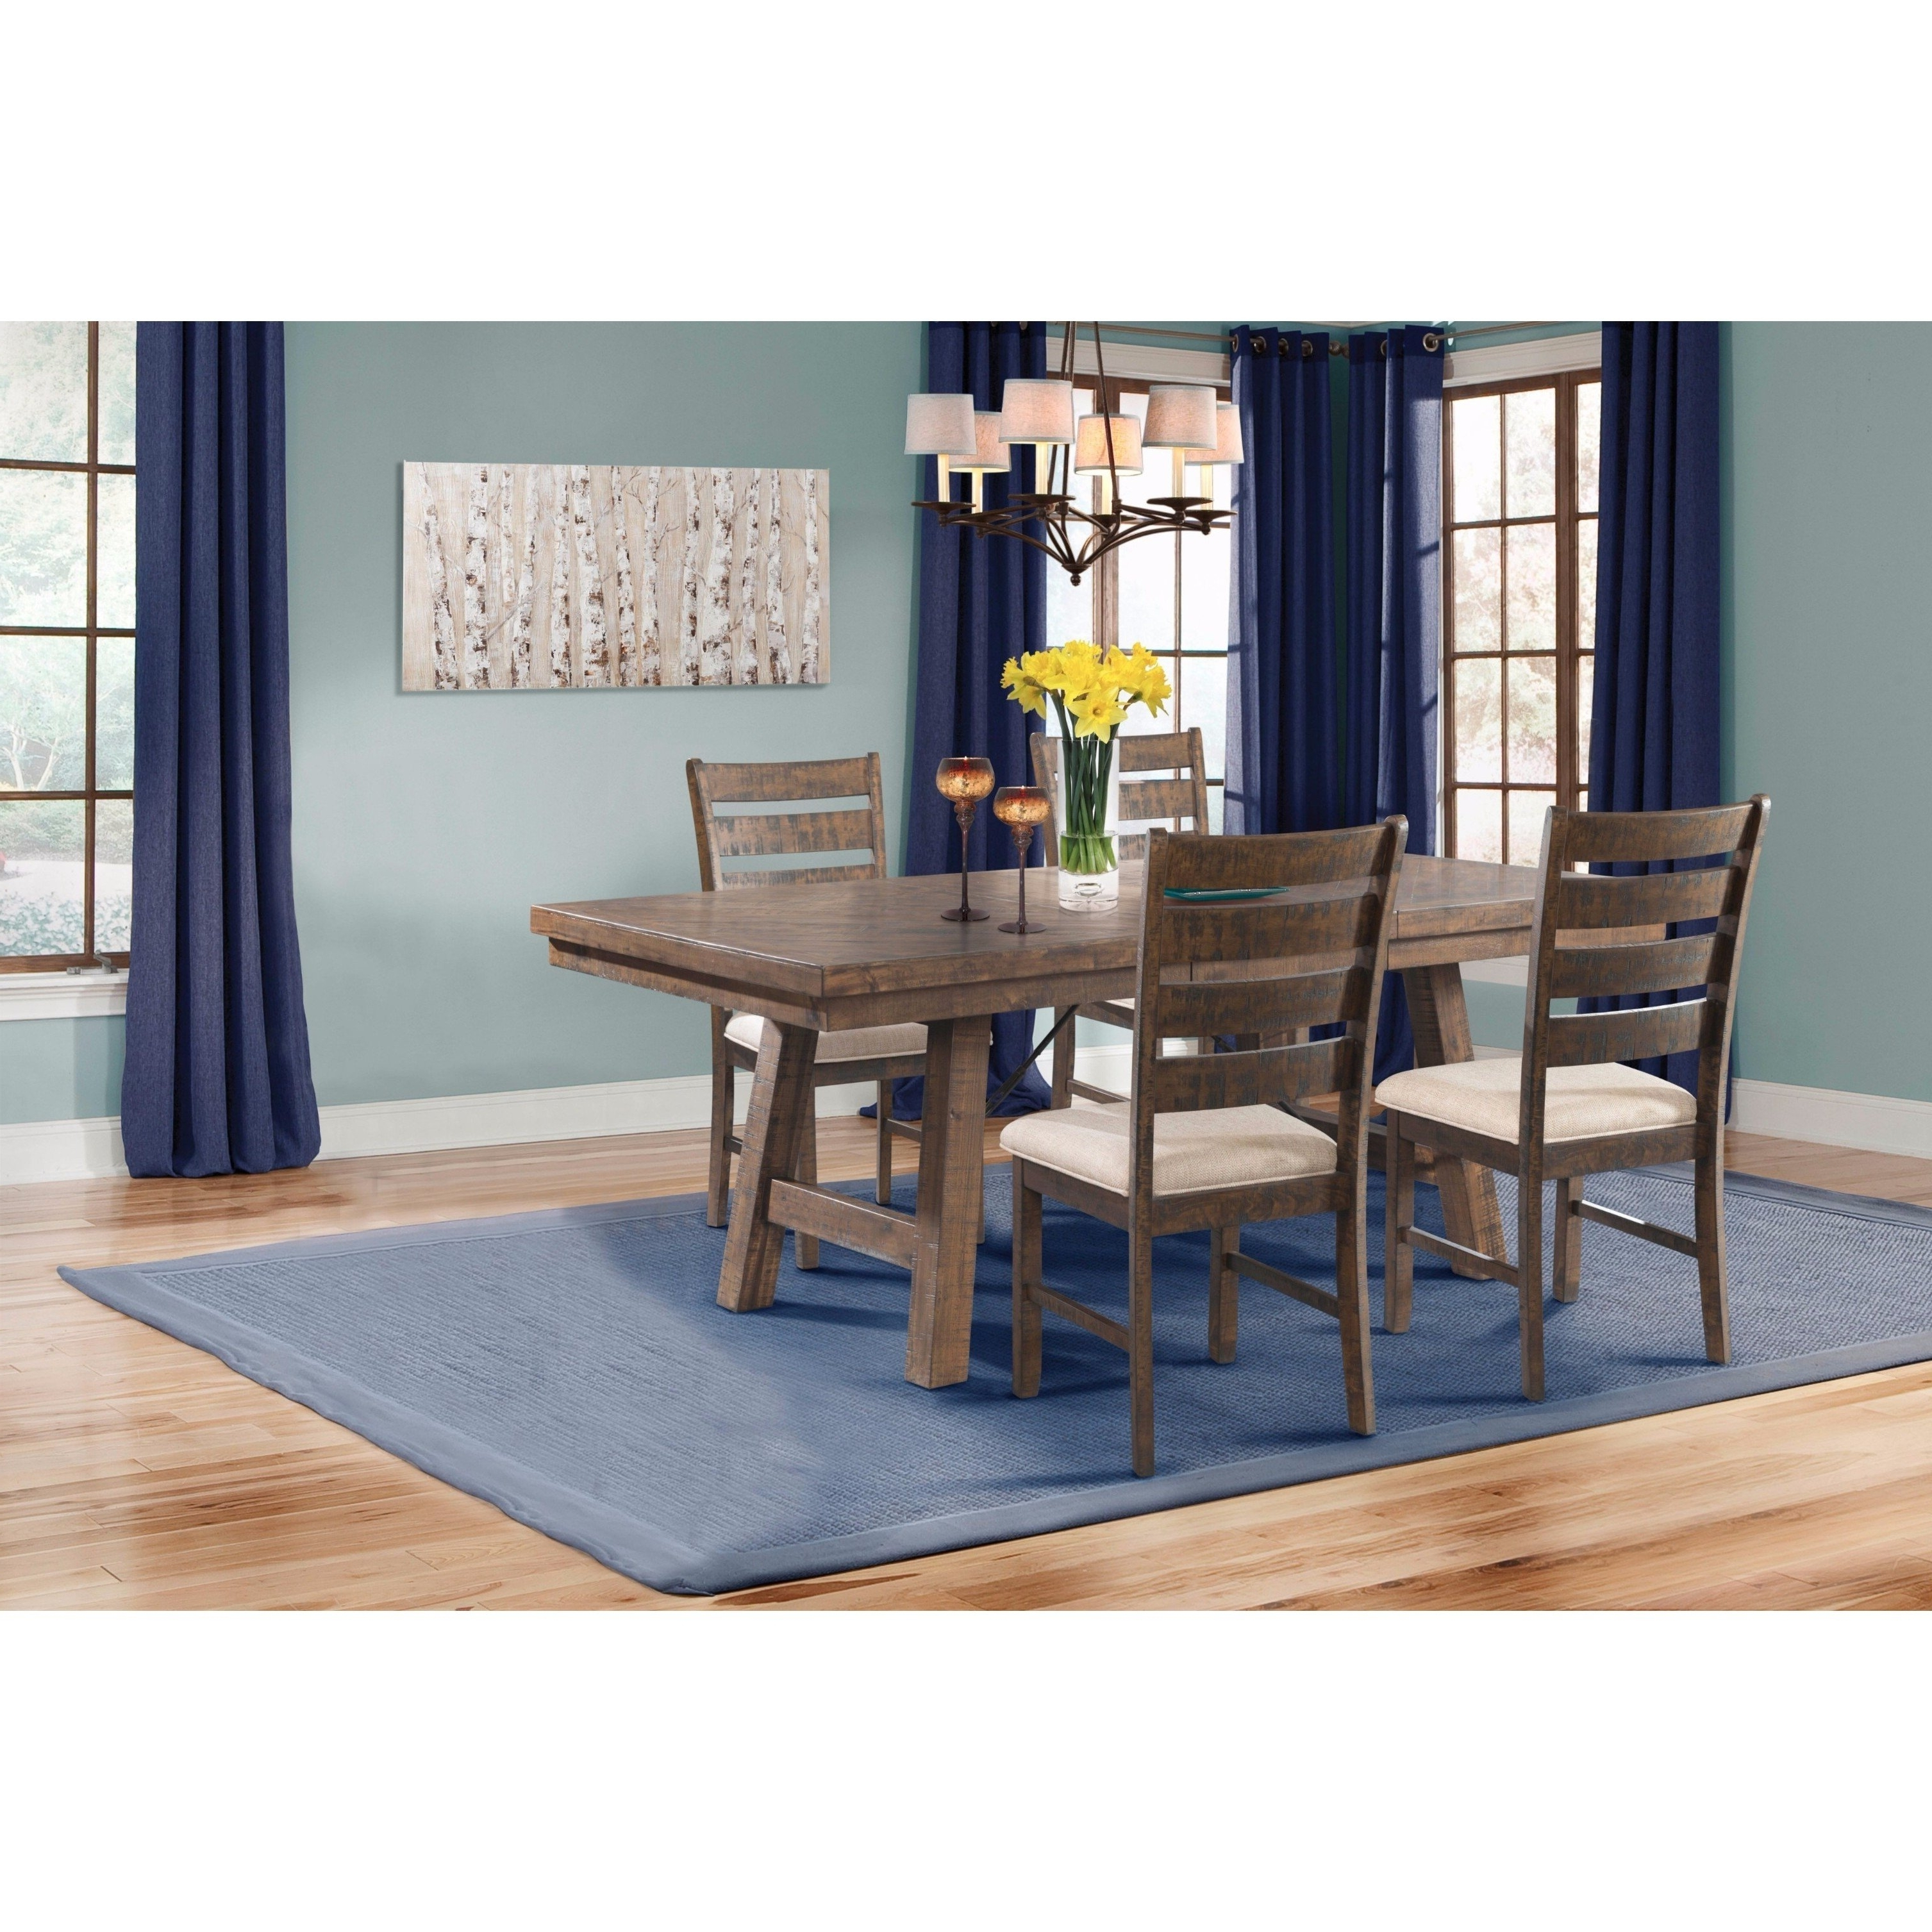 Preferred Shop Picket House Furnishings Dex 5Pc Dining Set Table, 4 Ladder Pertaining To Caden 6 Piece Dining Sets With Upholstered Side Chair (View 10 of 25)